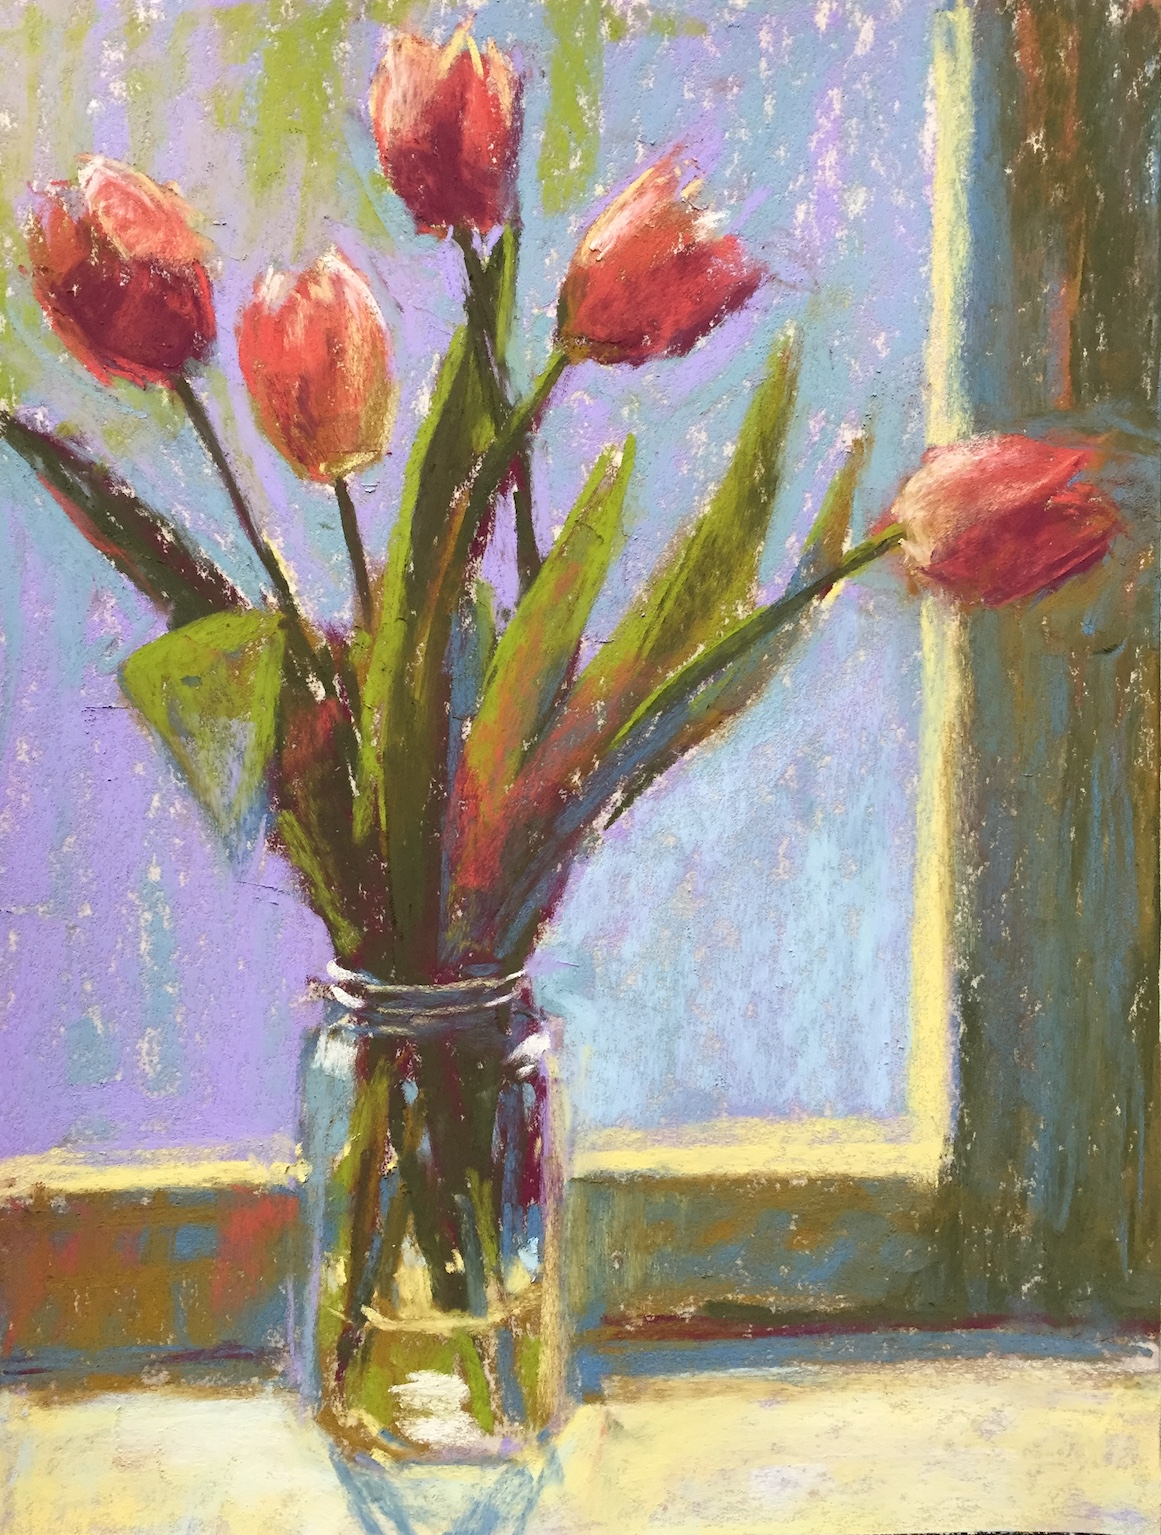 DK Project: Gail Sibley, Tulips 2, pastel, Unison pastels on UArt 500 paper, 12 x 9 in